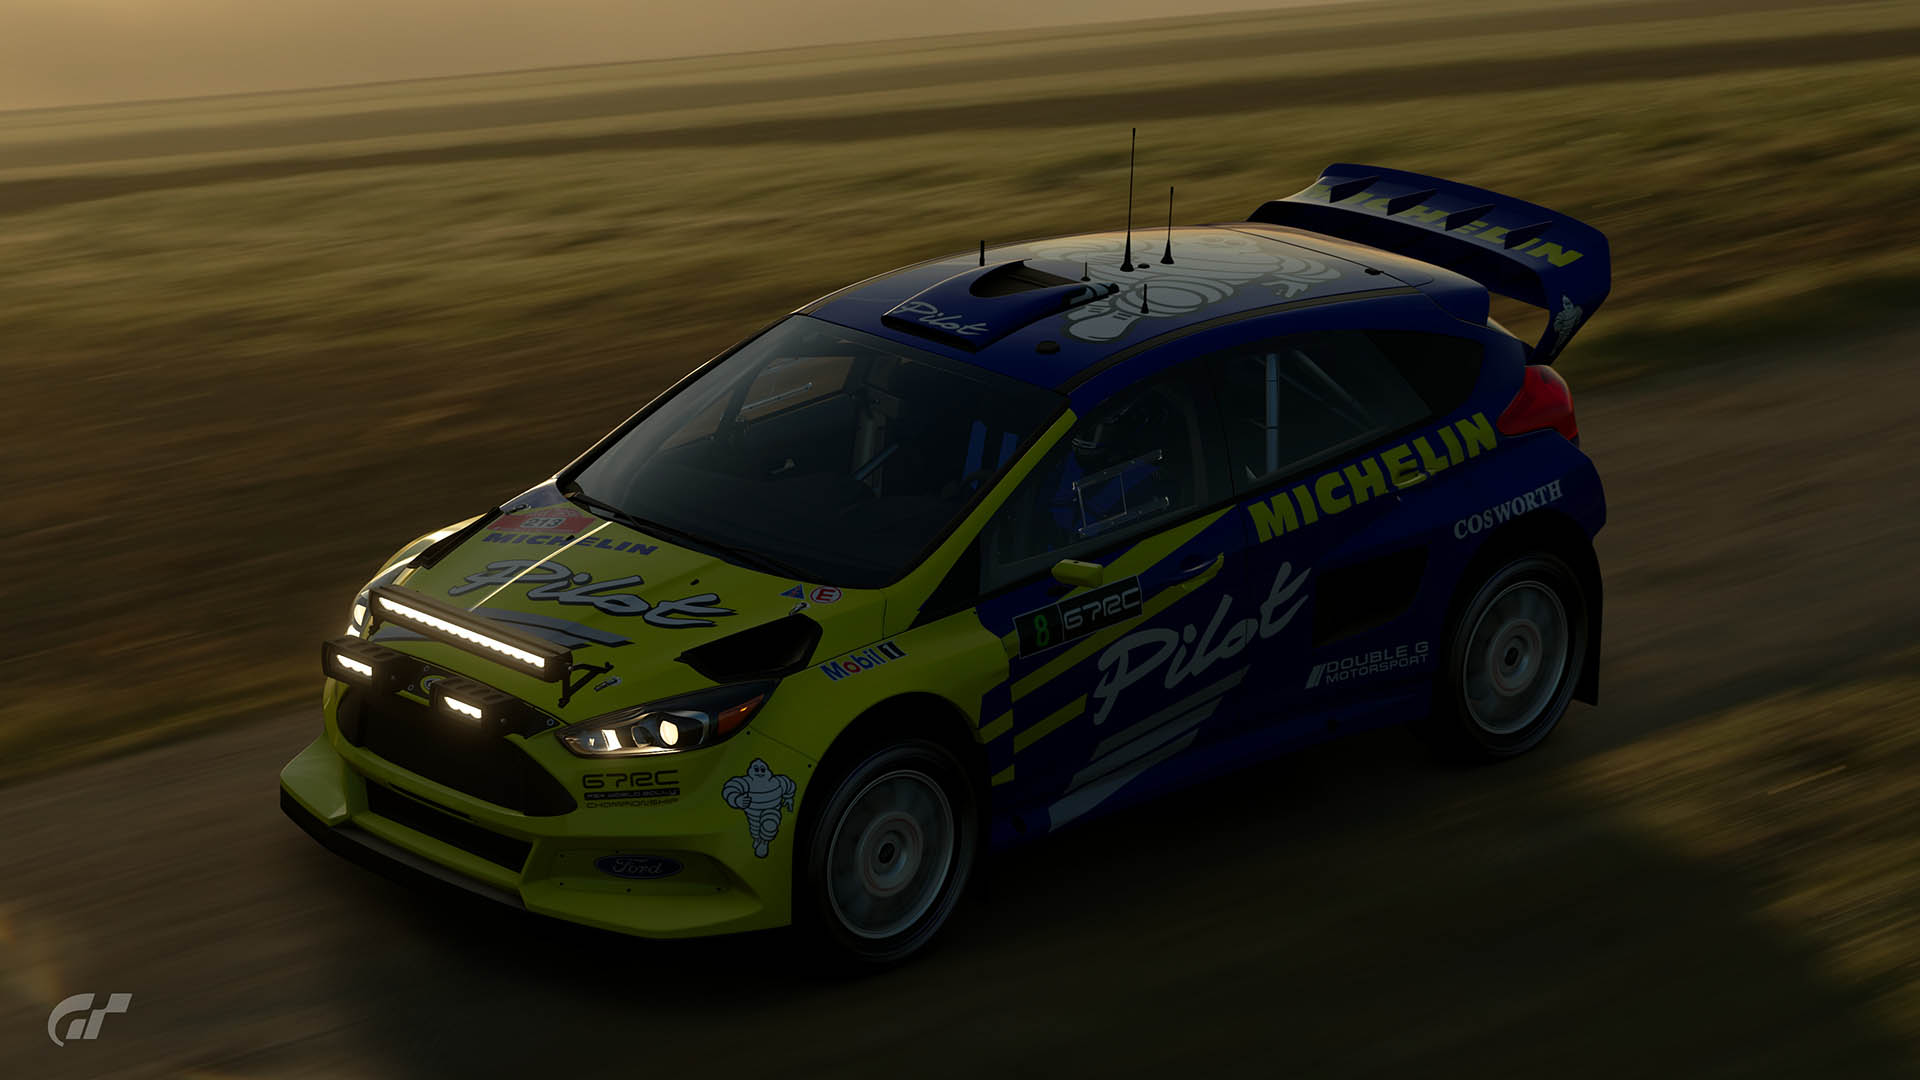 Malcolm Wilson Michelin Pilot Ford Focus Tribute Livery